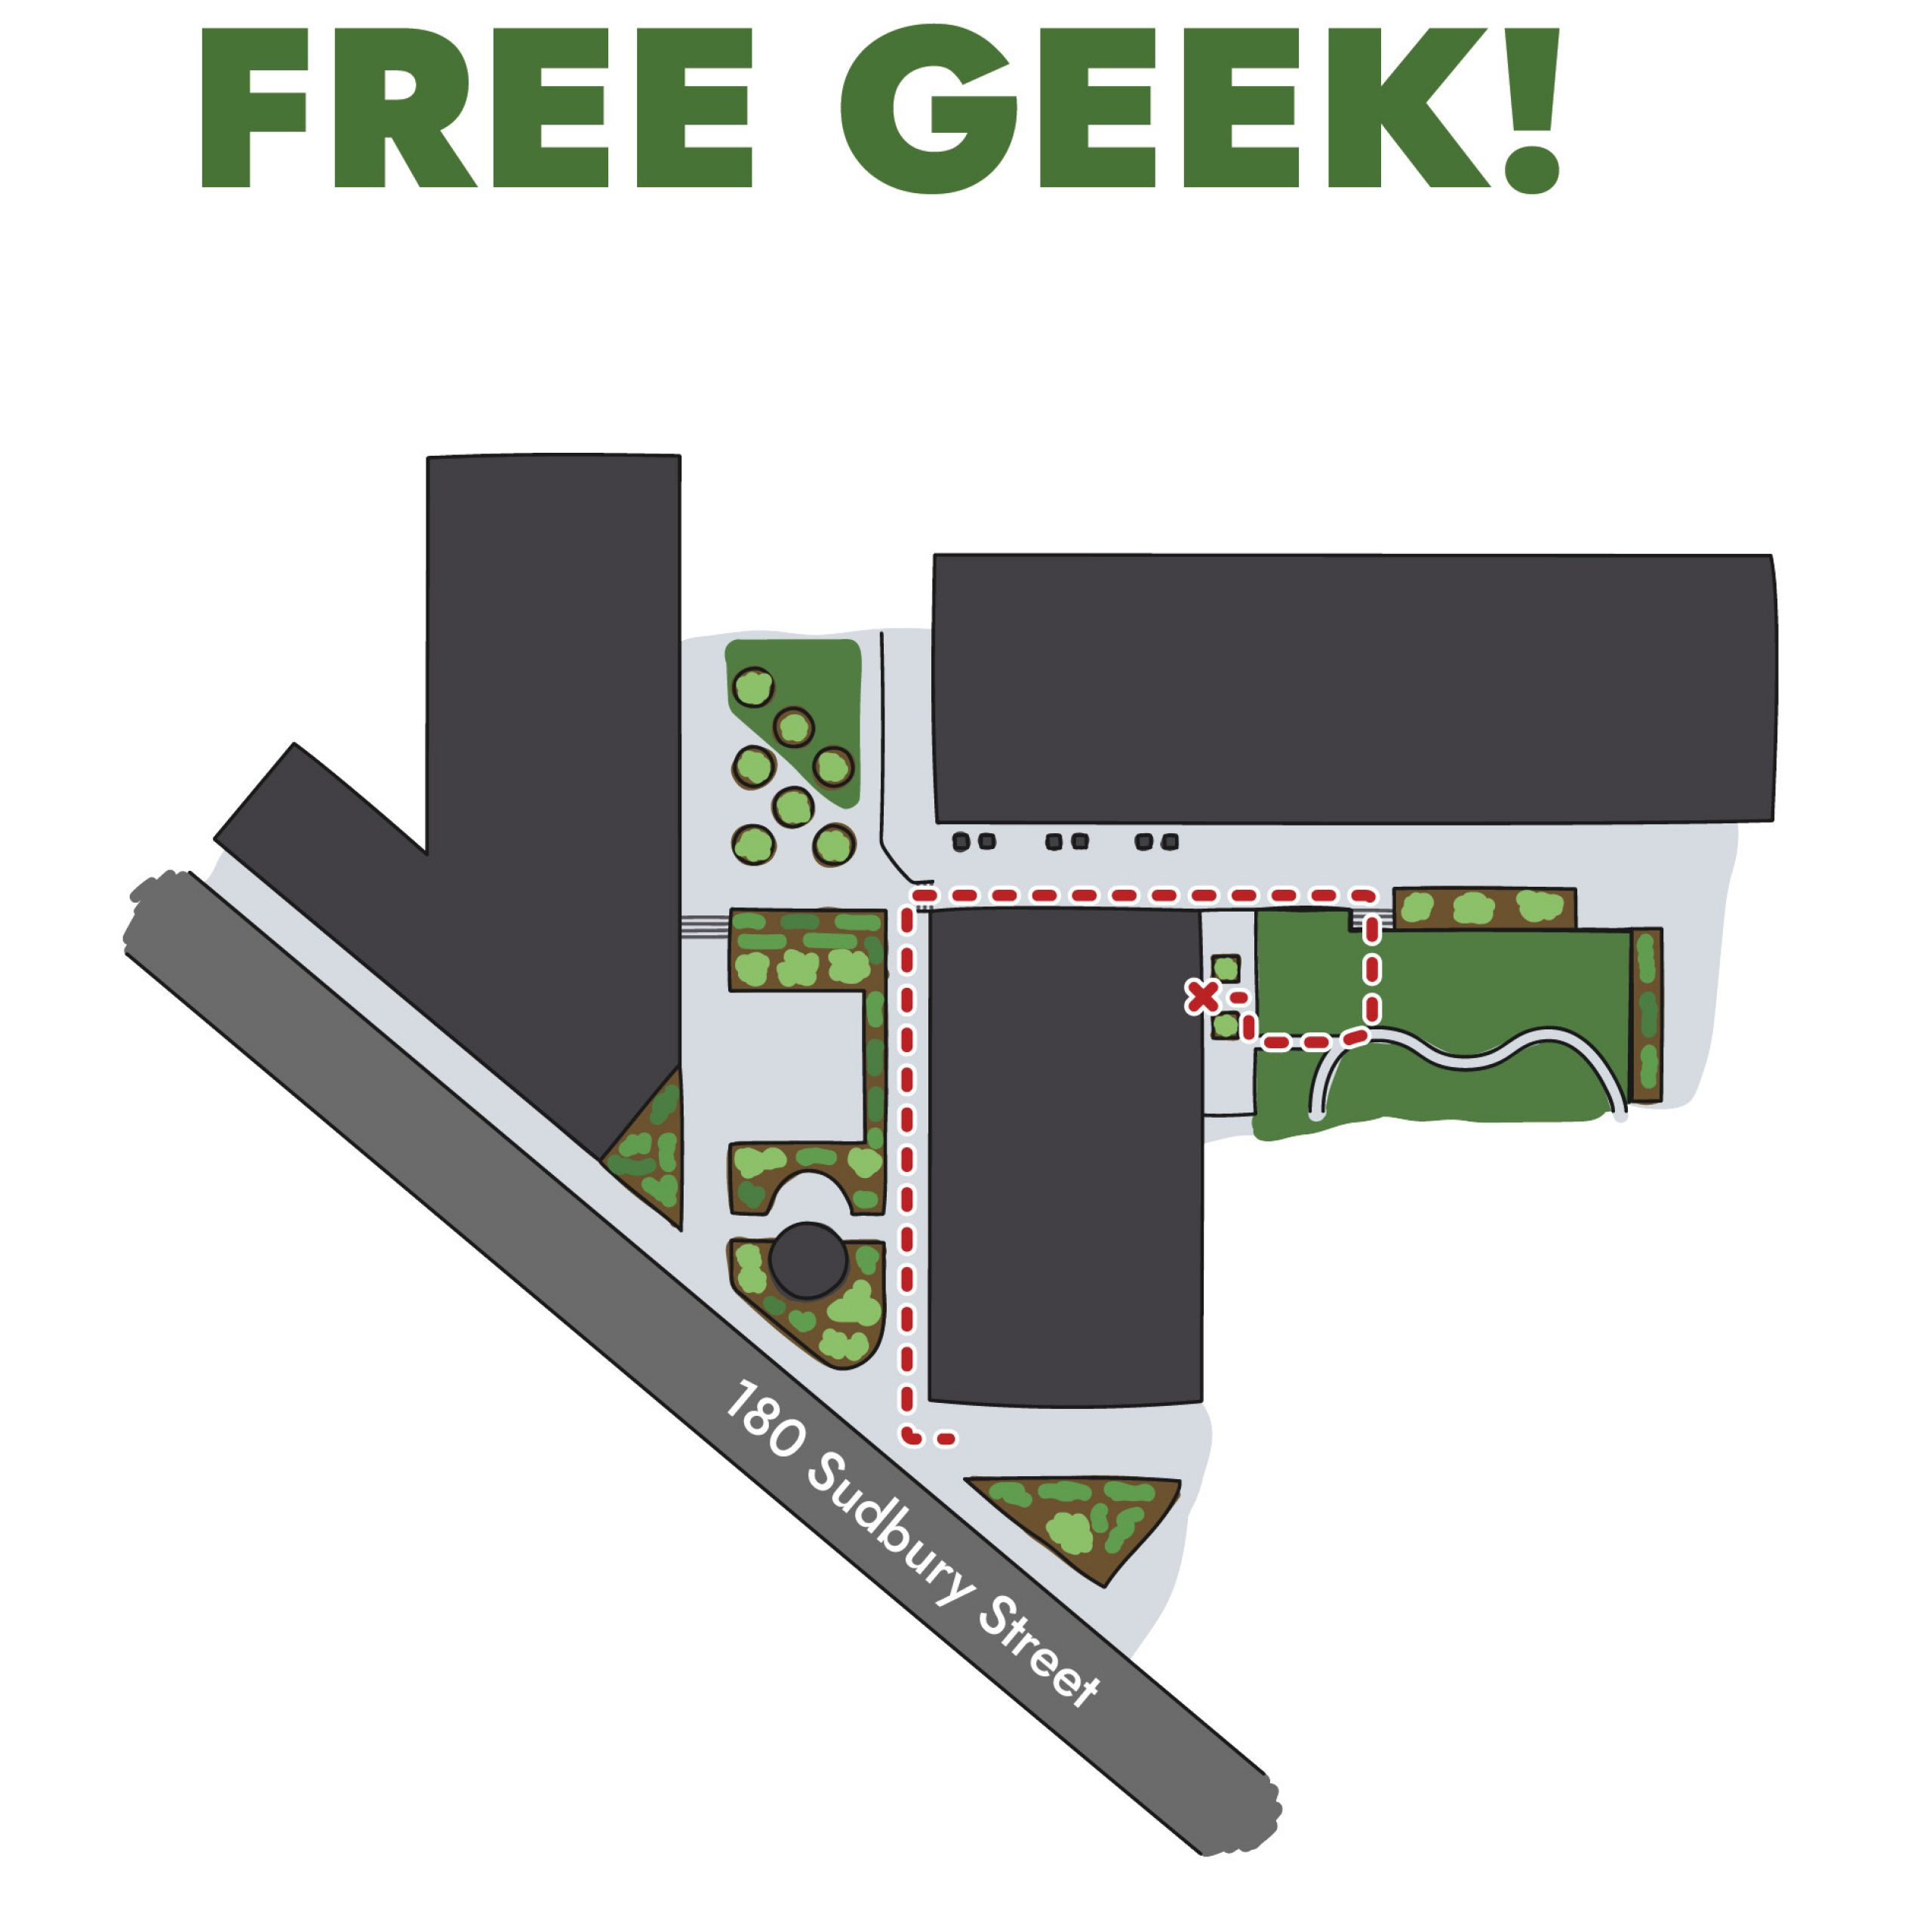 Map to Free Geek Toronto's direct entrance